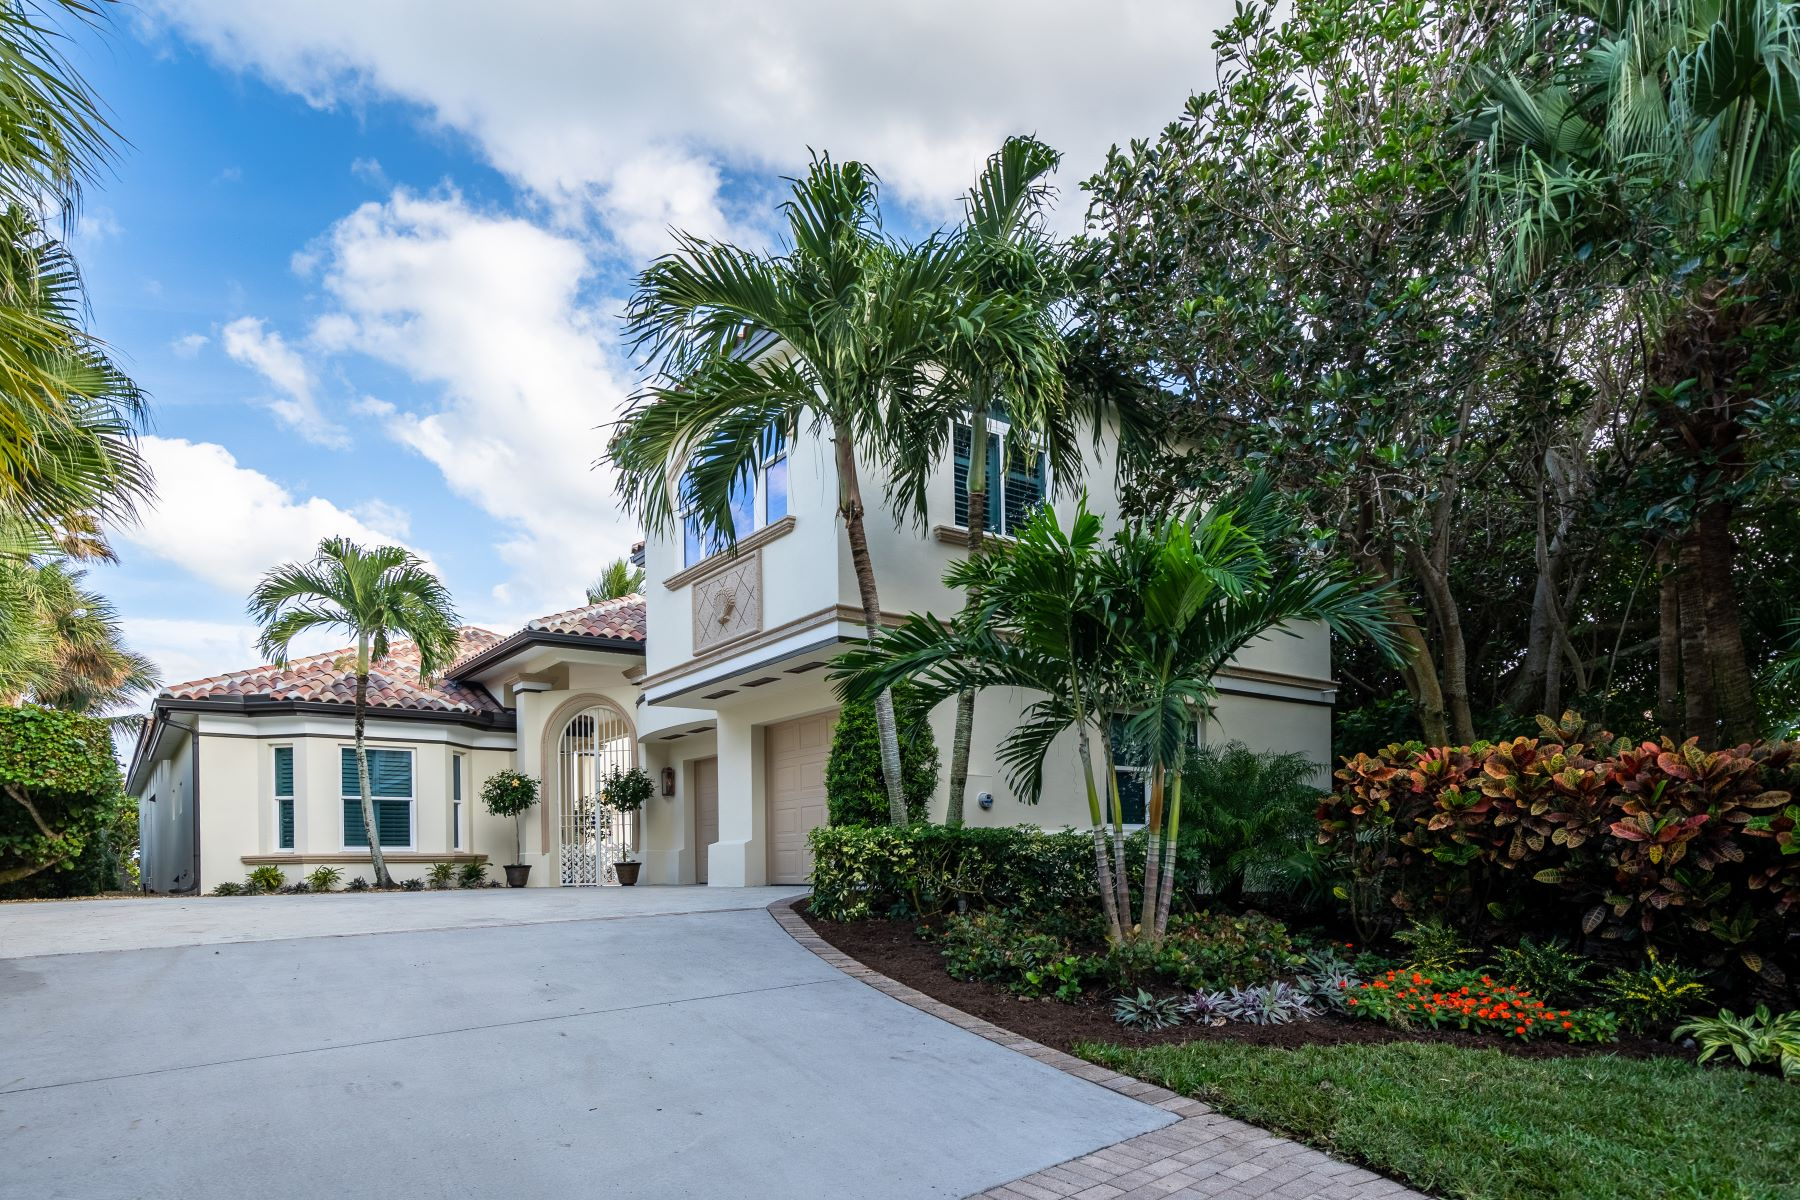 Single Family Homes for Sale at Stunning Oceanfront Courtyard Home 151 Mariner Beach Lane Vero Beach, Florida 32963 United States